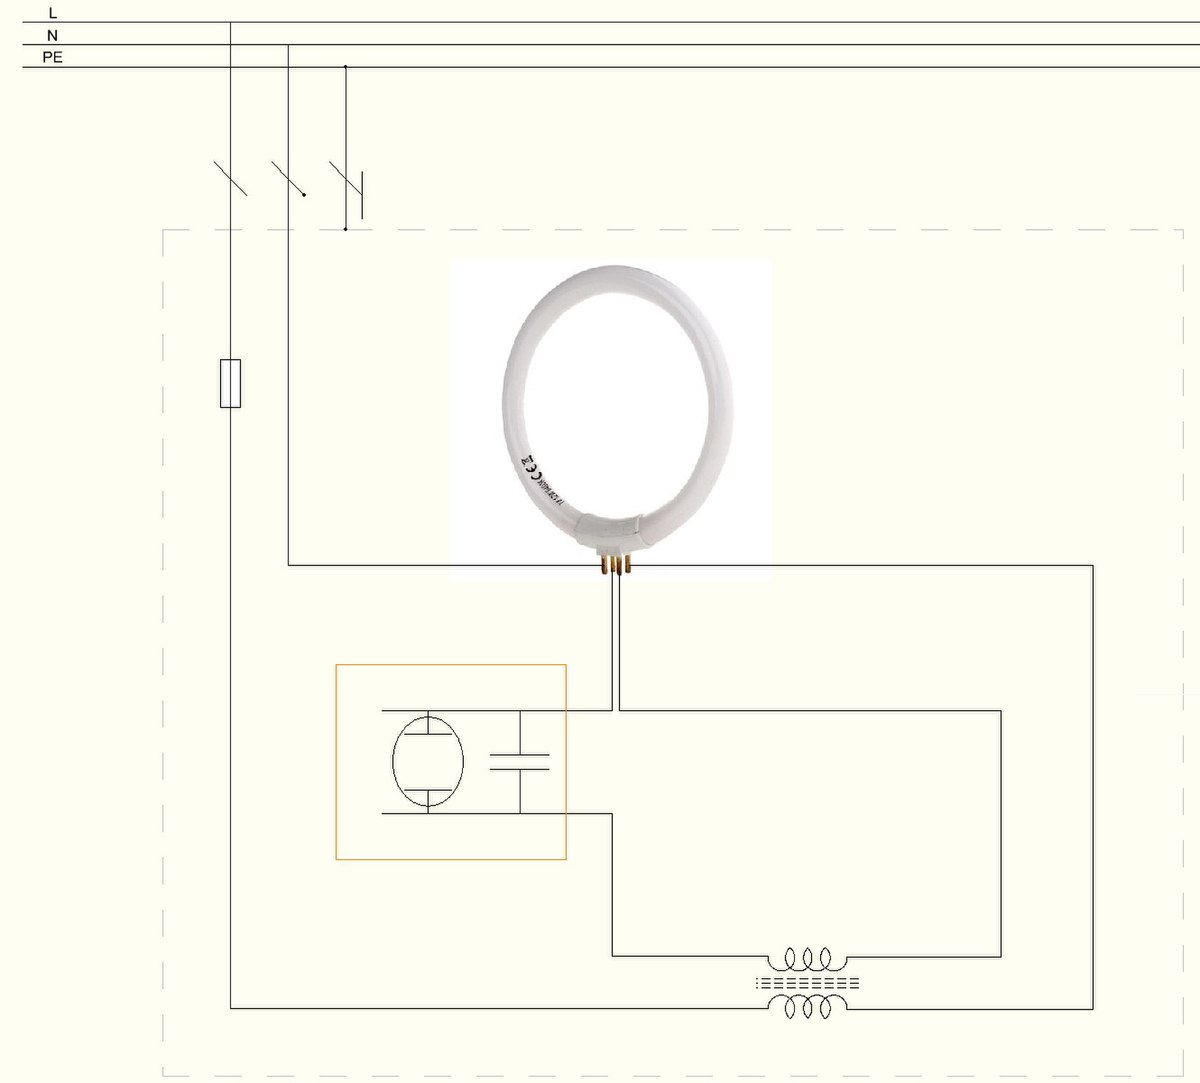 File:How to wire circular fluorescent lamp.JPG - Wikimedia Commons | Tube Light Wiring Diagram |  | - Wikimedia Commons